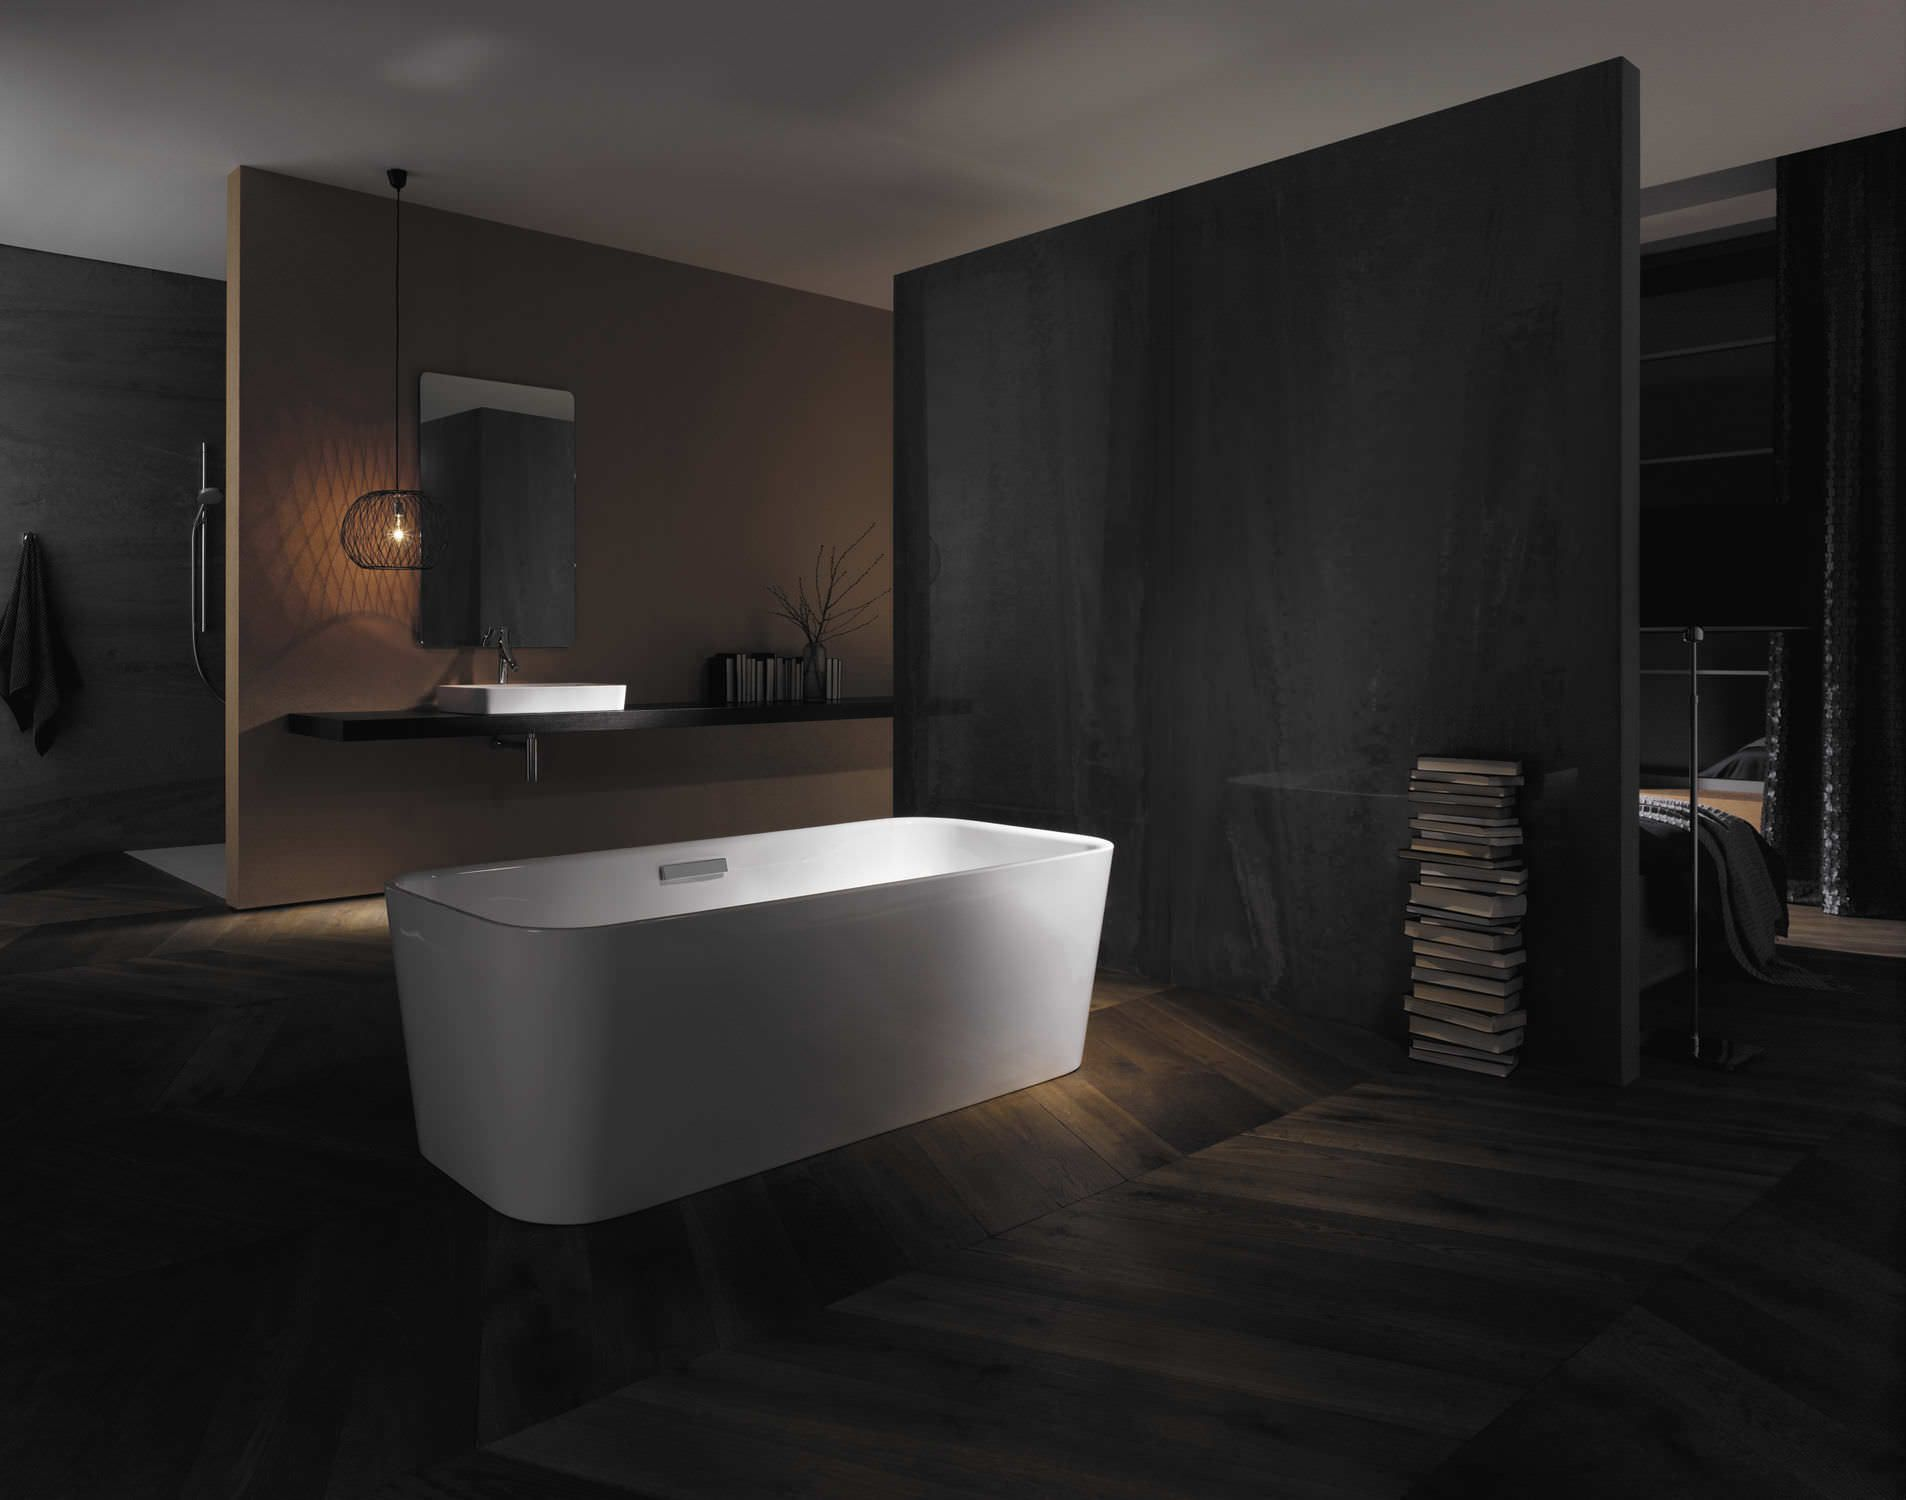 Incredible 17 Best Images About Minimalist Bathroom On Pinterest Largest Home Design Picture Inspirations Pitcheantrous